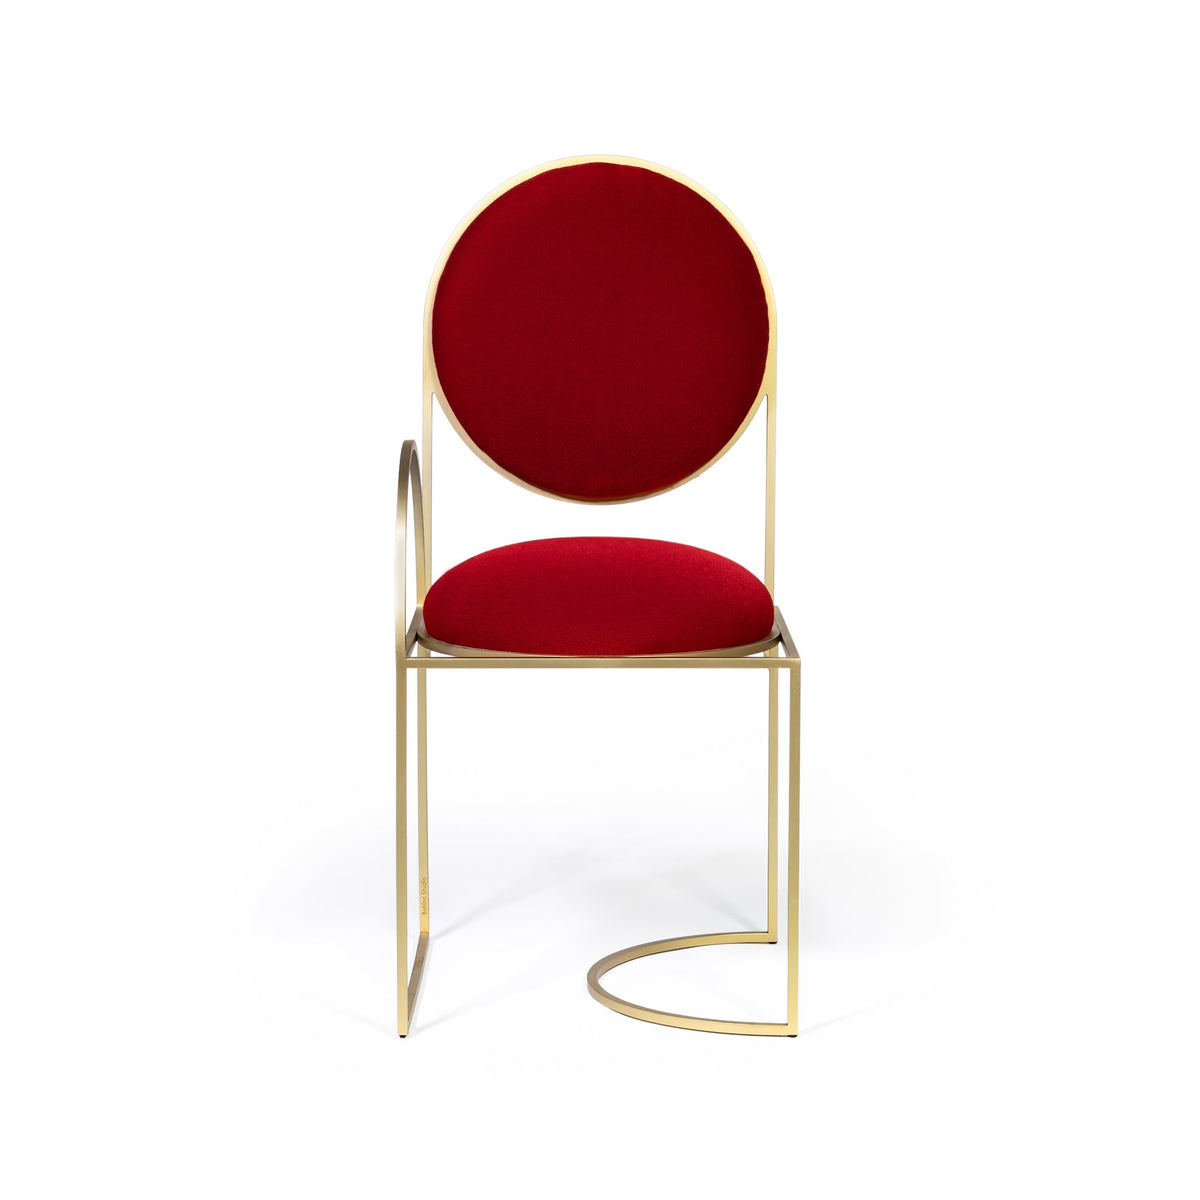 SOLAR CHAIR - RED